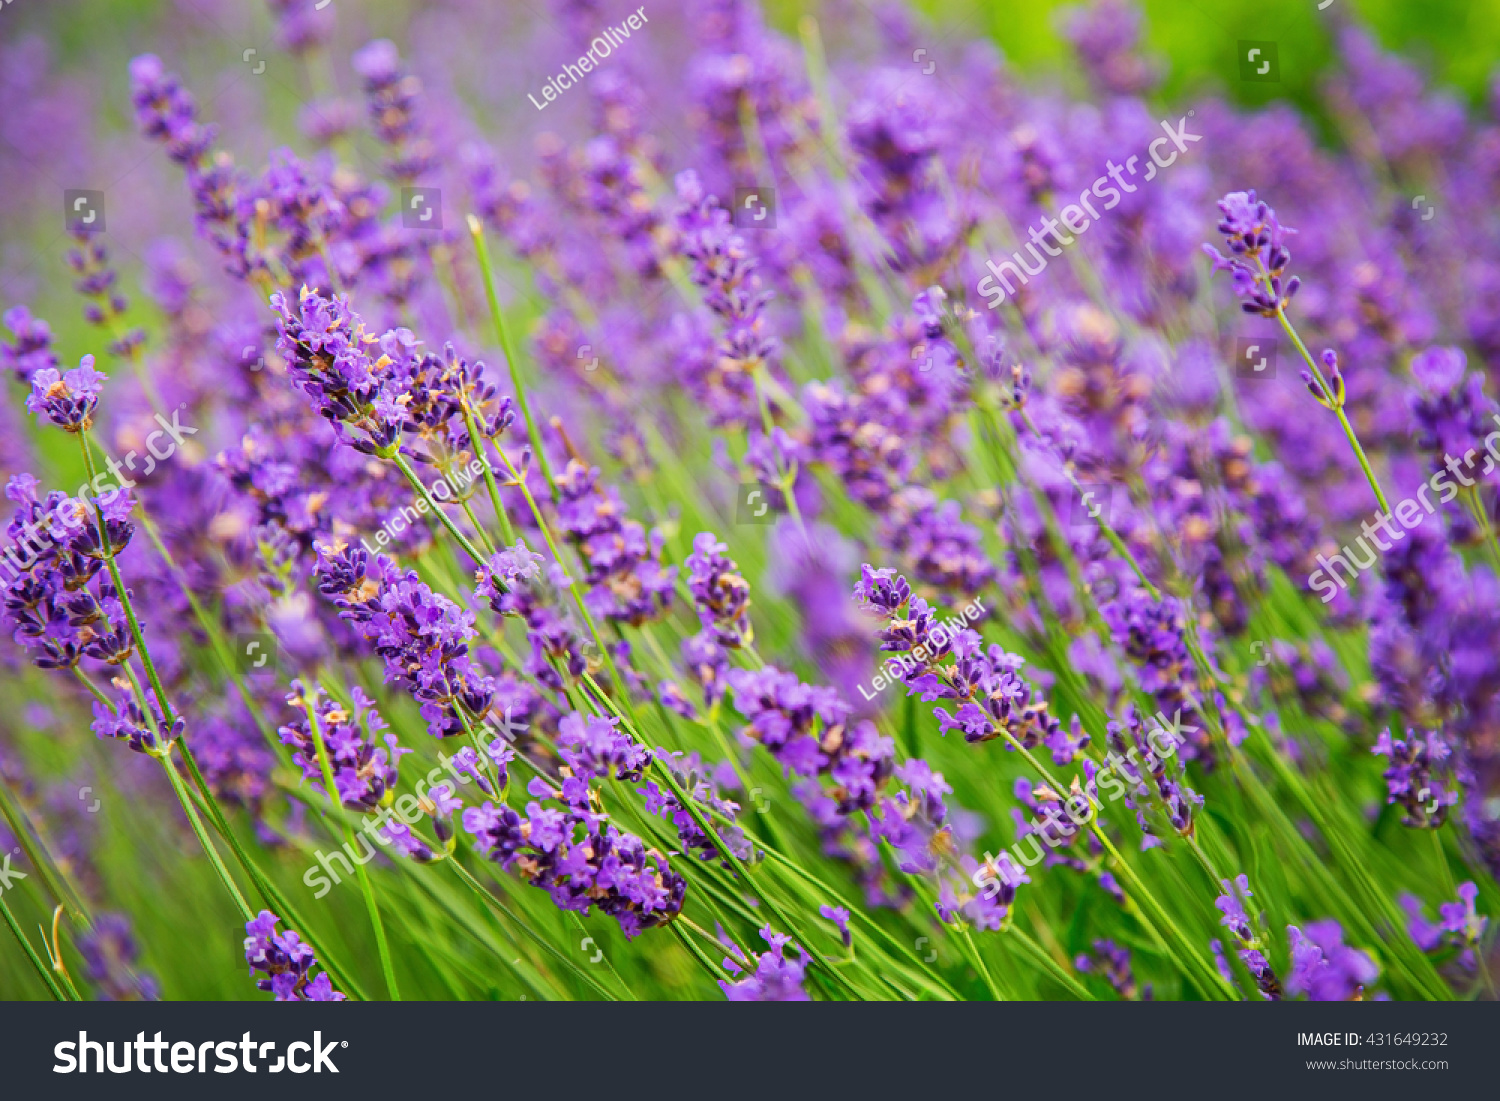 Beautiful lavender flowers ez canvas id 431649232 izmirmasajfo